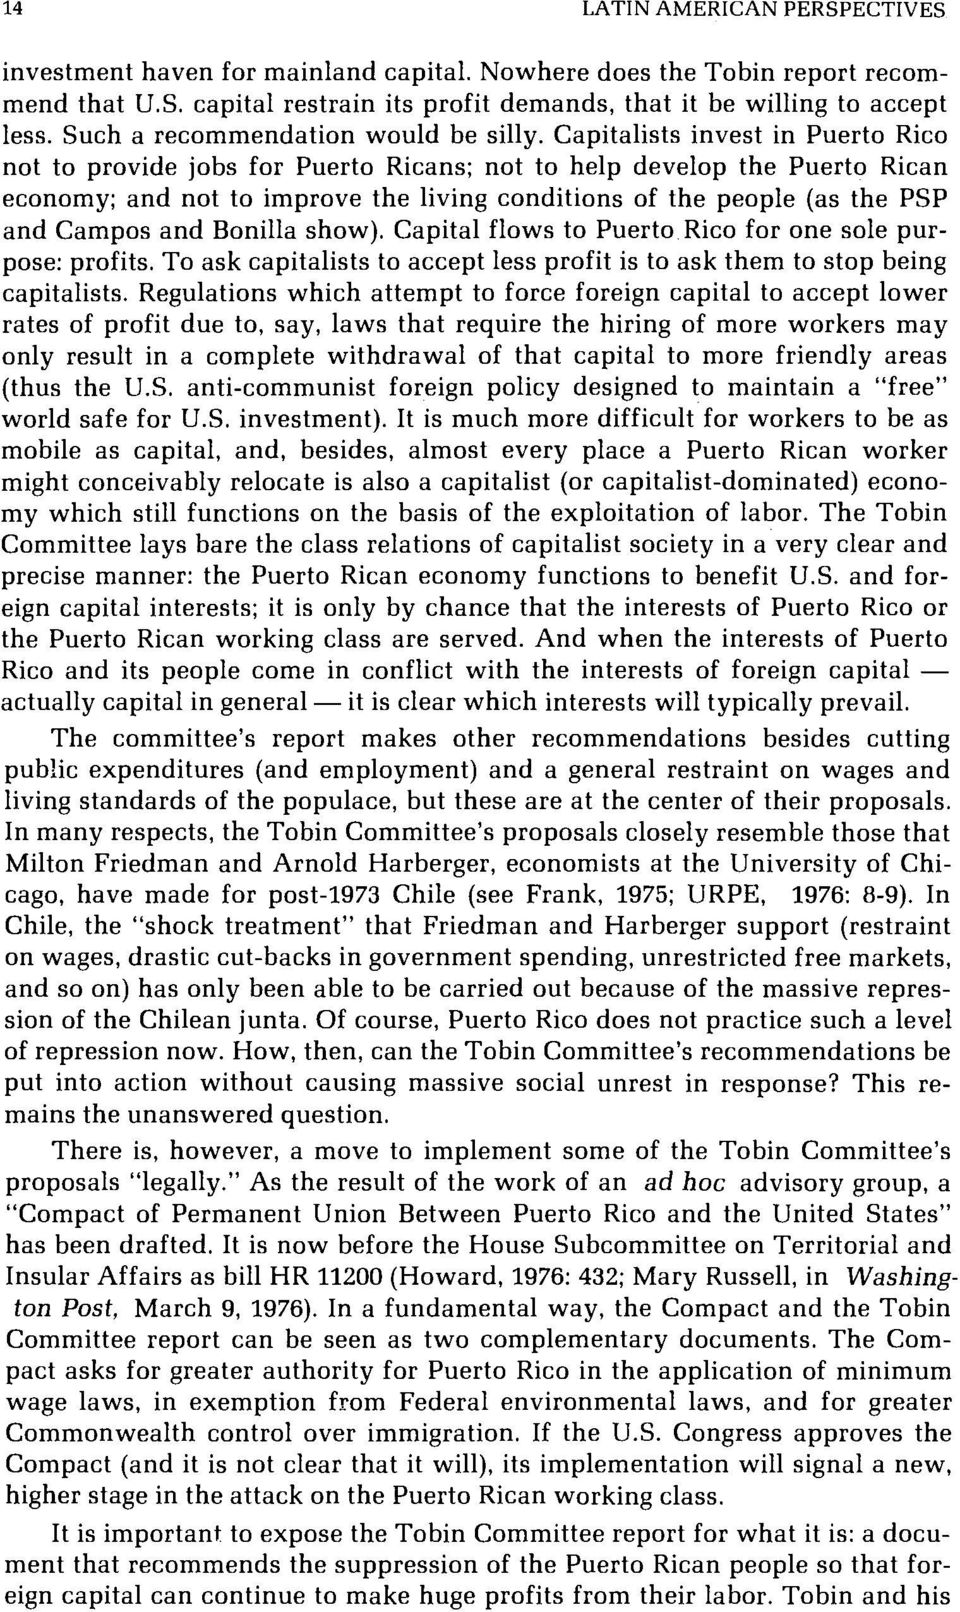 Capitalists invest in Puerto Rico not to provide jobs for Puerto Ricans; not to help develop the Puerto Rican economy; and not to improve the living conditions of the people (as the PSP and Campos